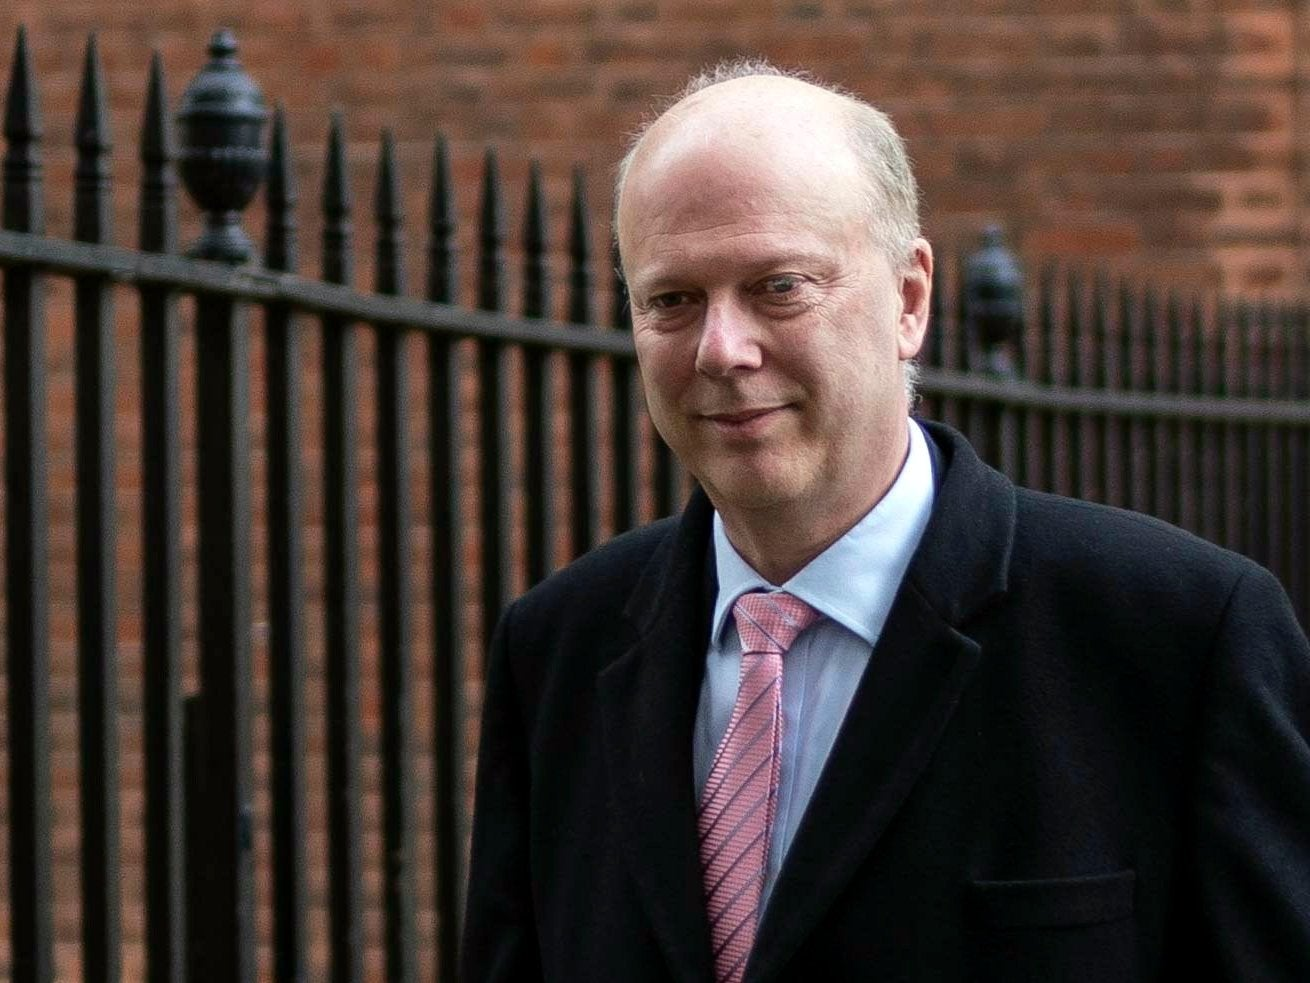 Chris Grayling: Government sends health secretary to answer Brexit ferry questions instead of transport chief